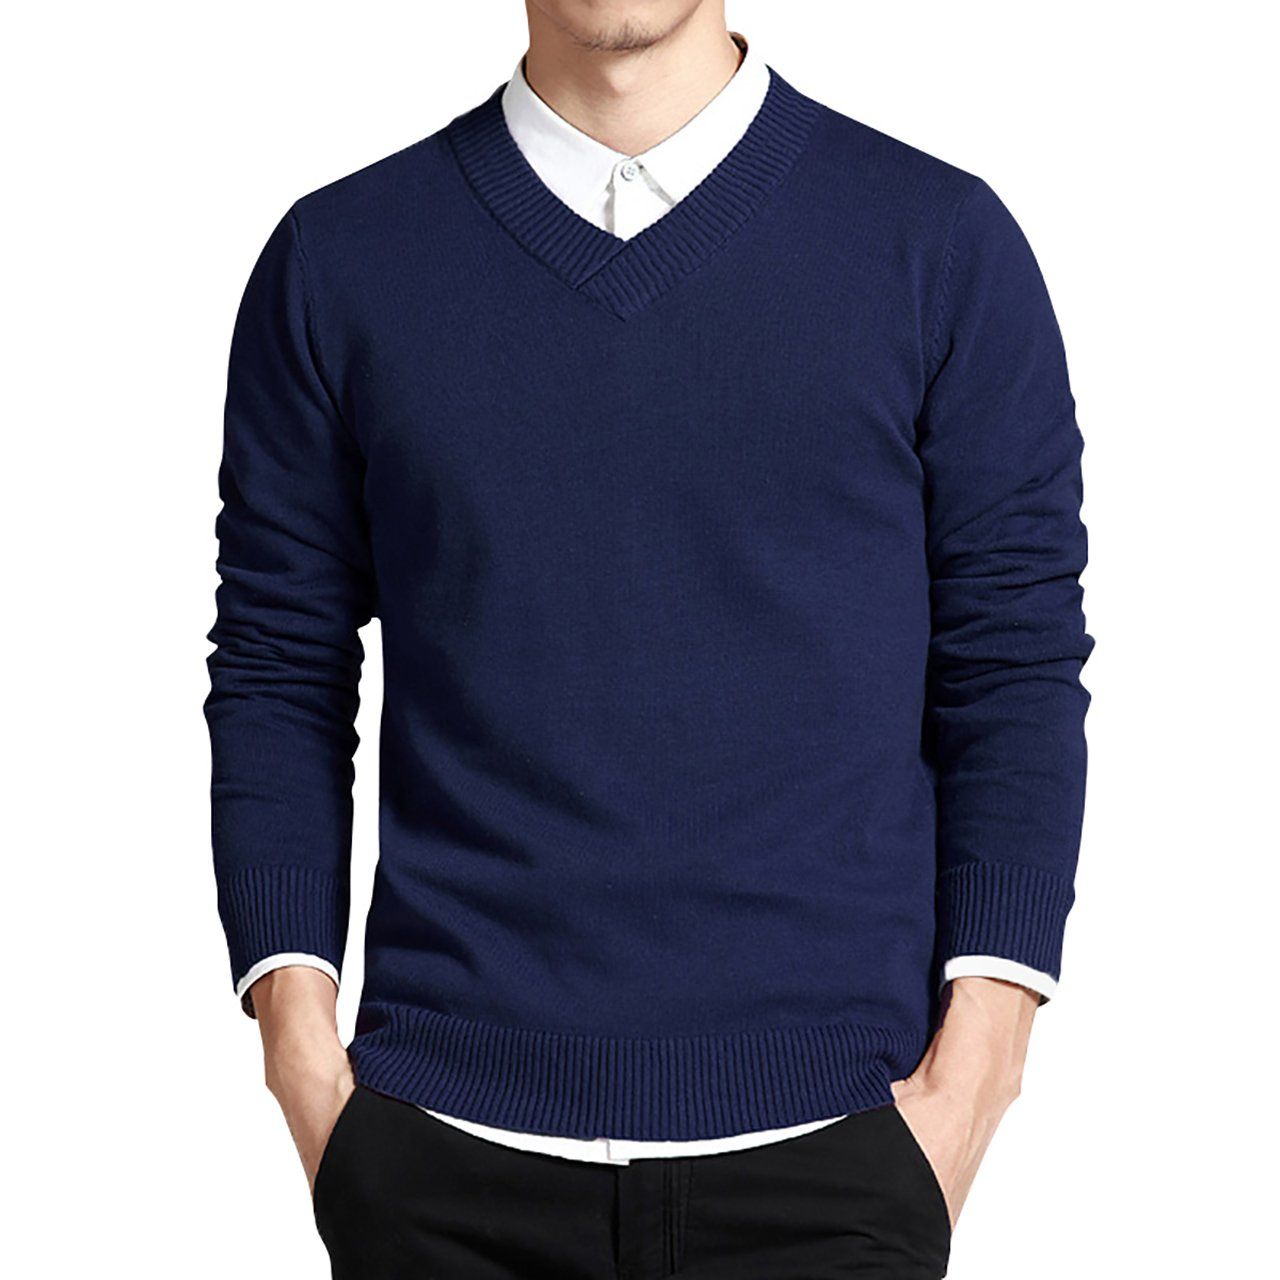 LTIFONE Mens Slim Comfortably Knitted Long Sleeve V-Neck Sweaters (Blue,S)